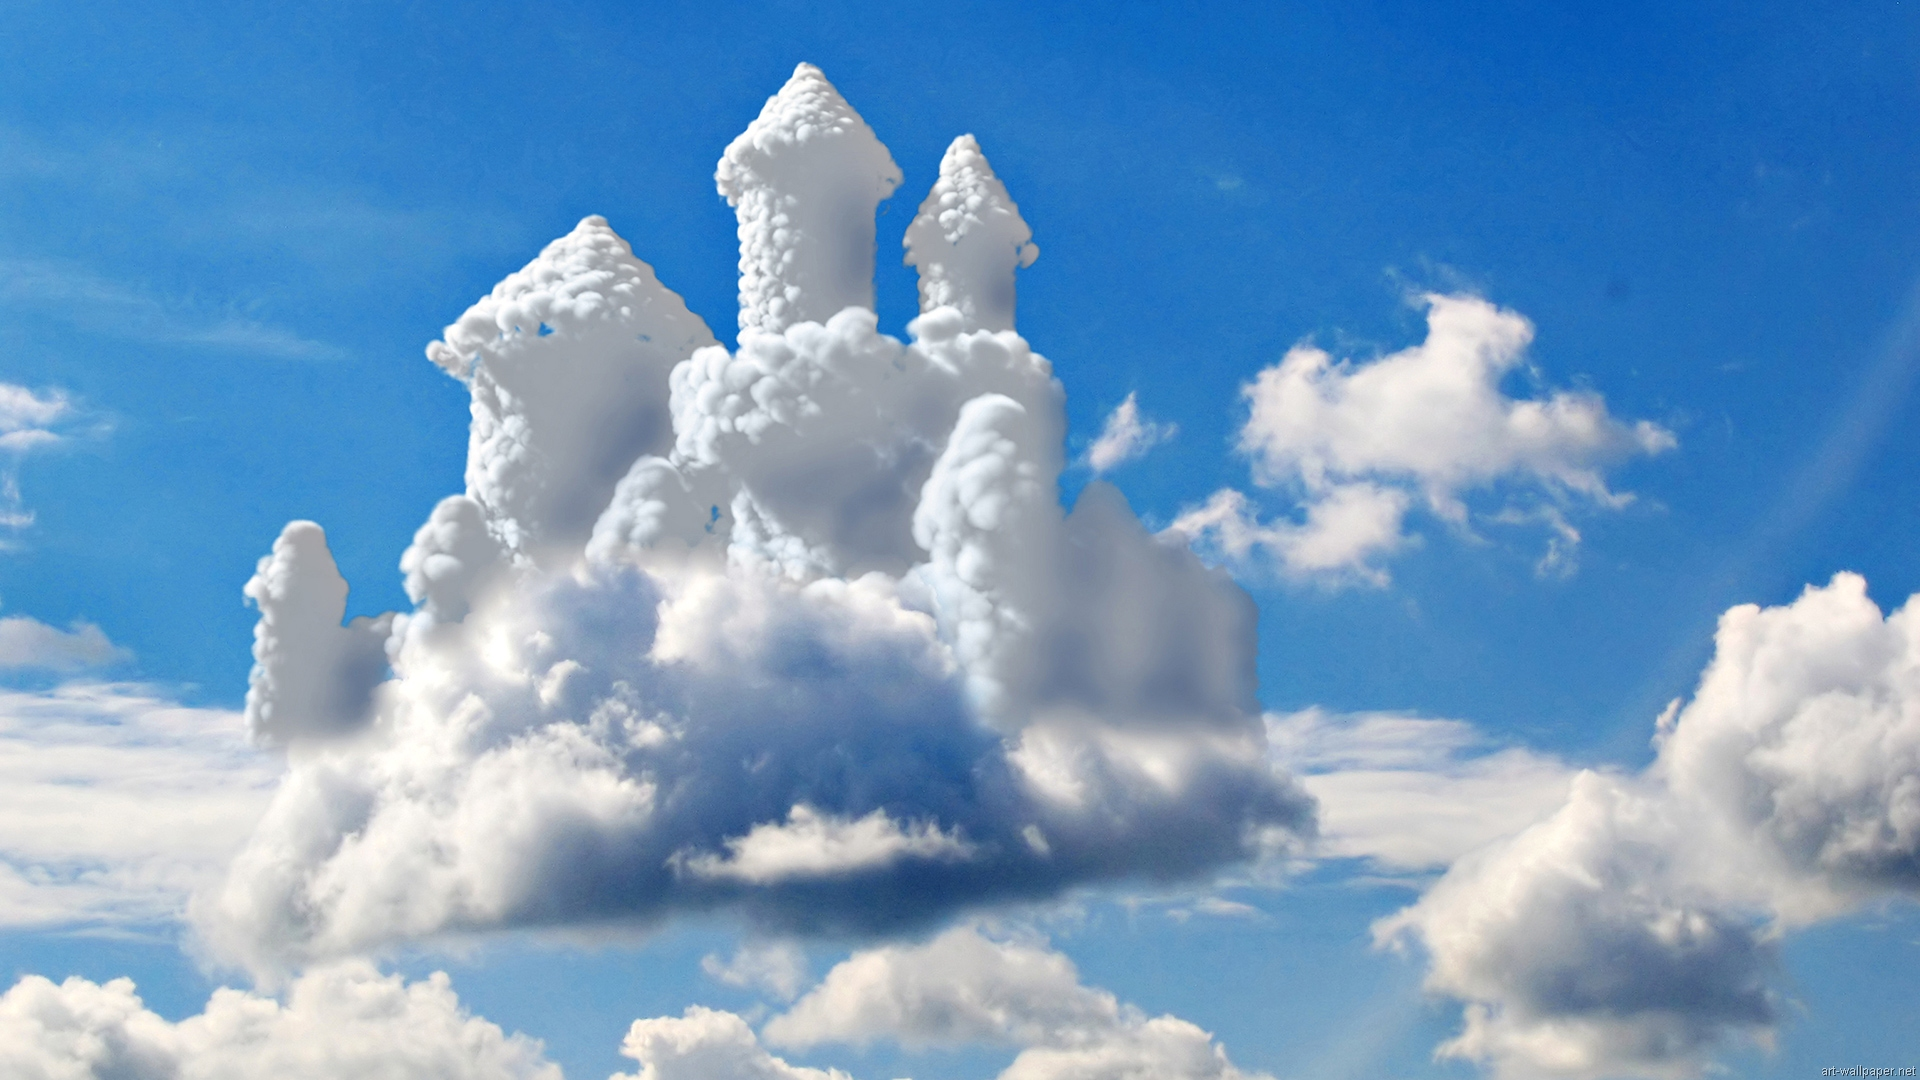 cloud wallpaper castle